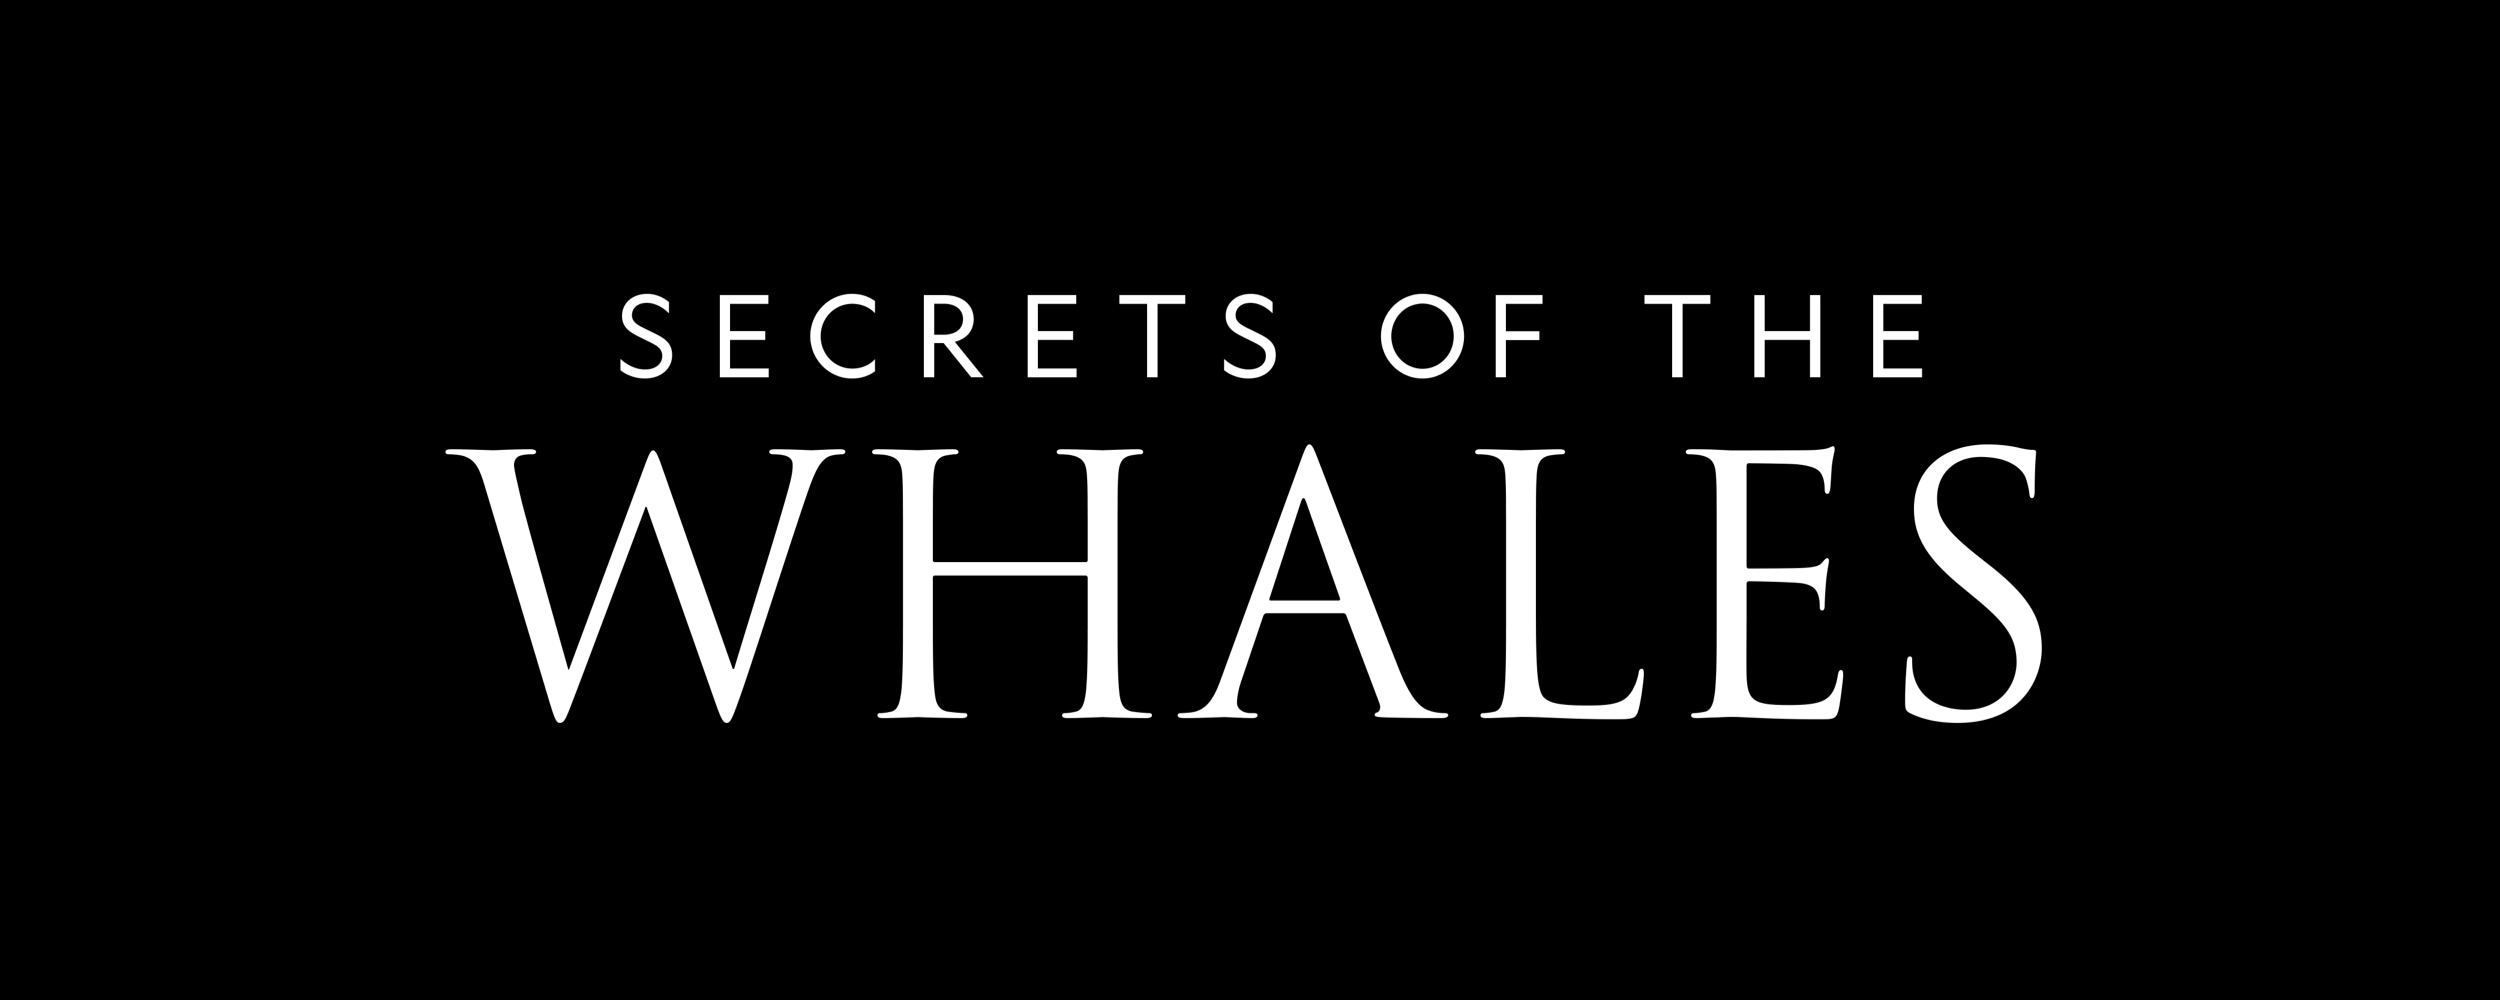 Secrets of the Whales Media Kit